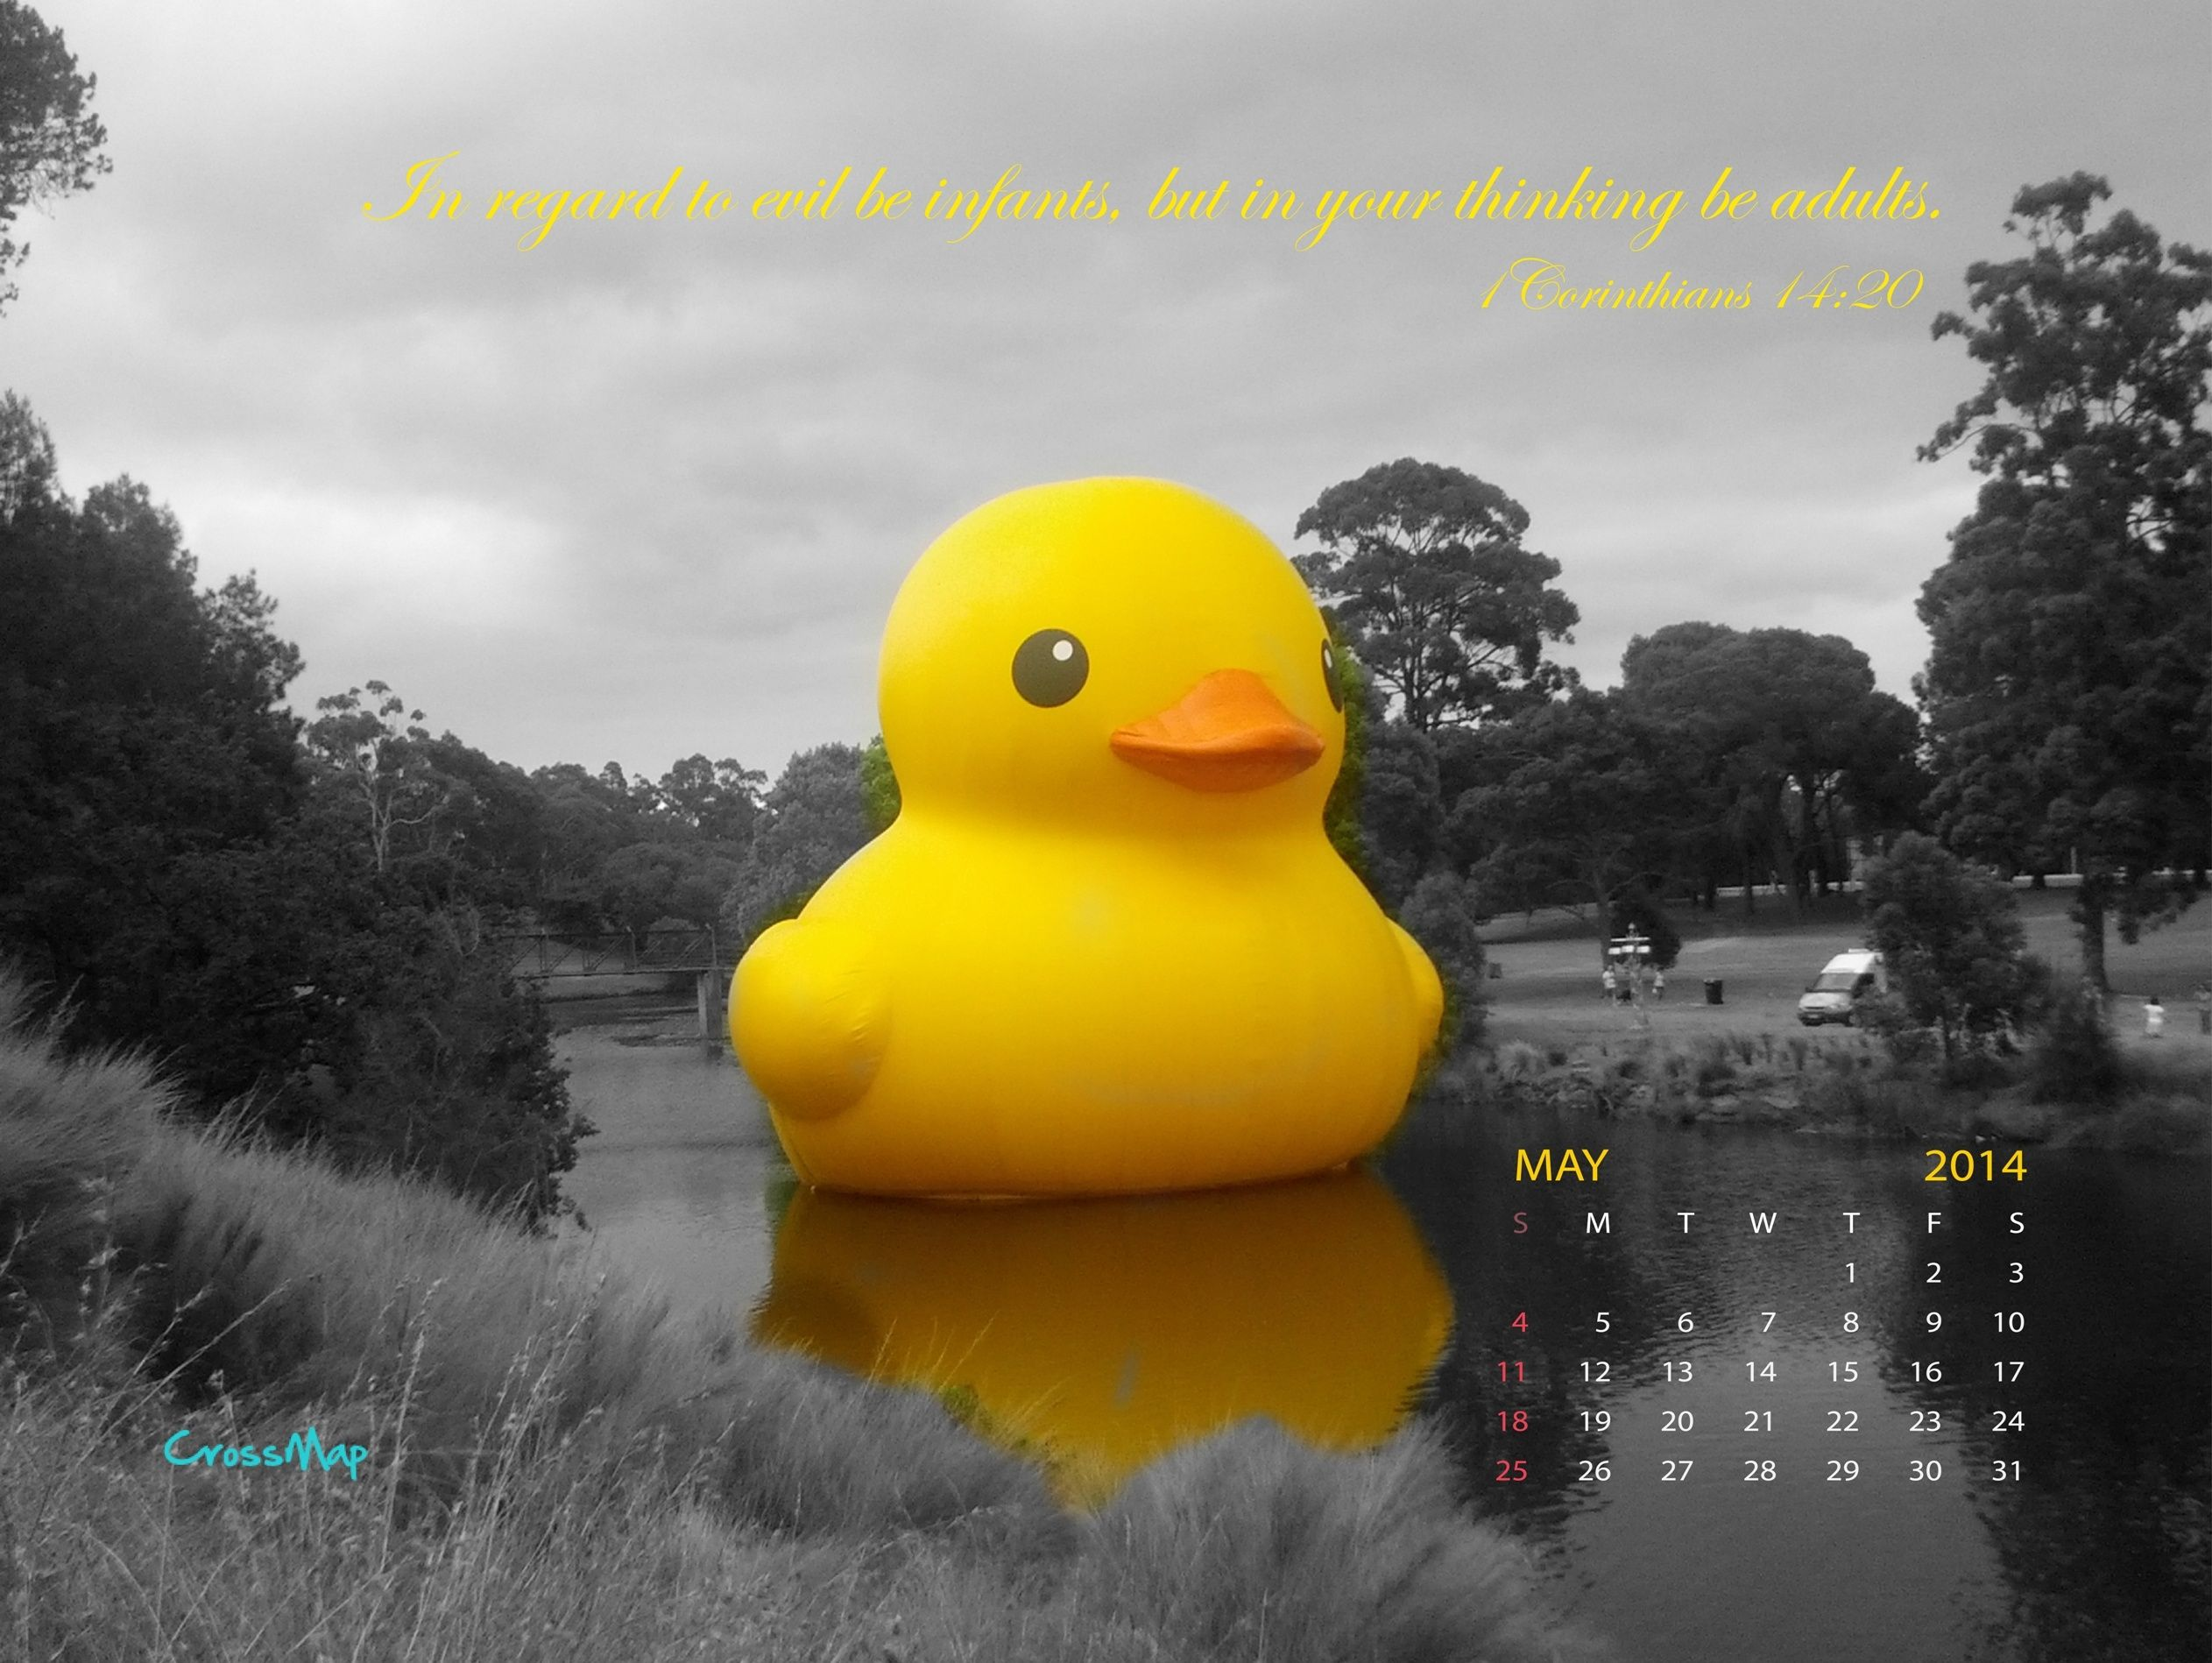 65 Rubber Duck Wallpapers   Download at WallpaperBro 2525x1898